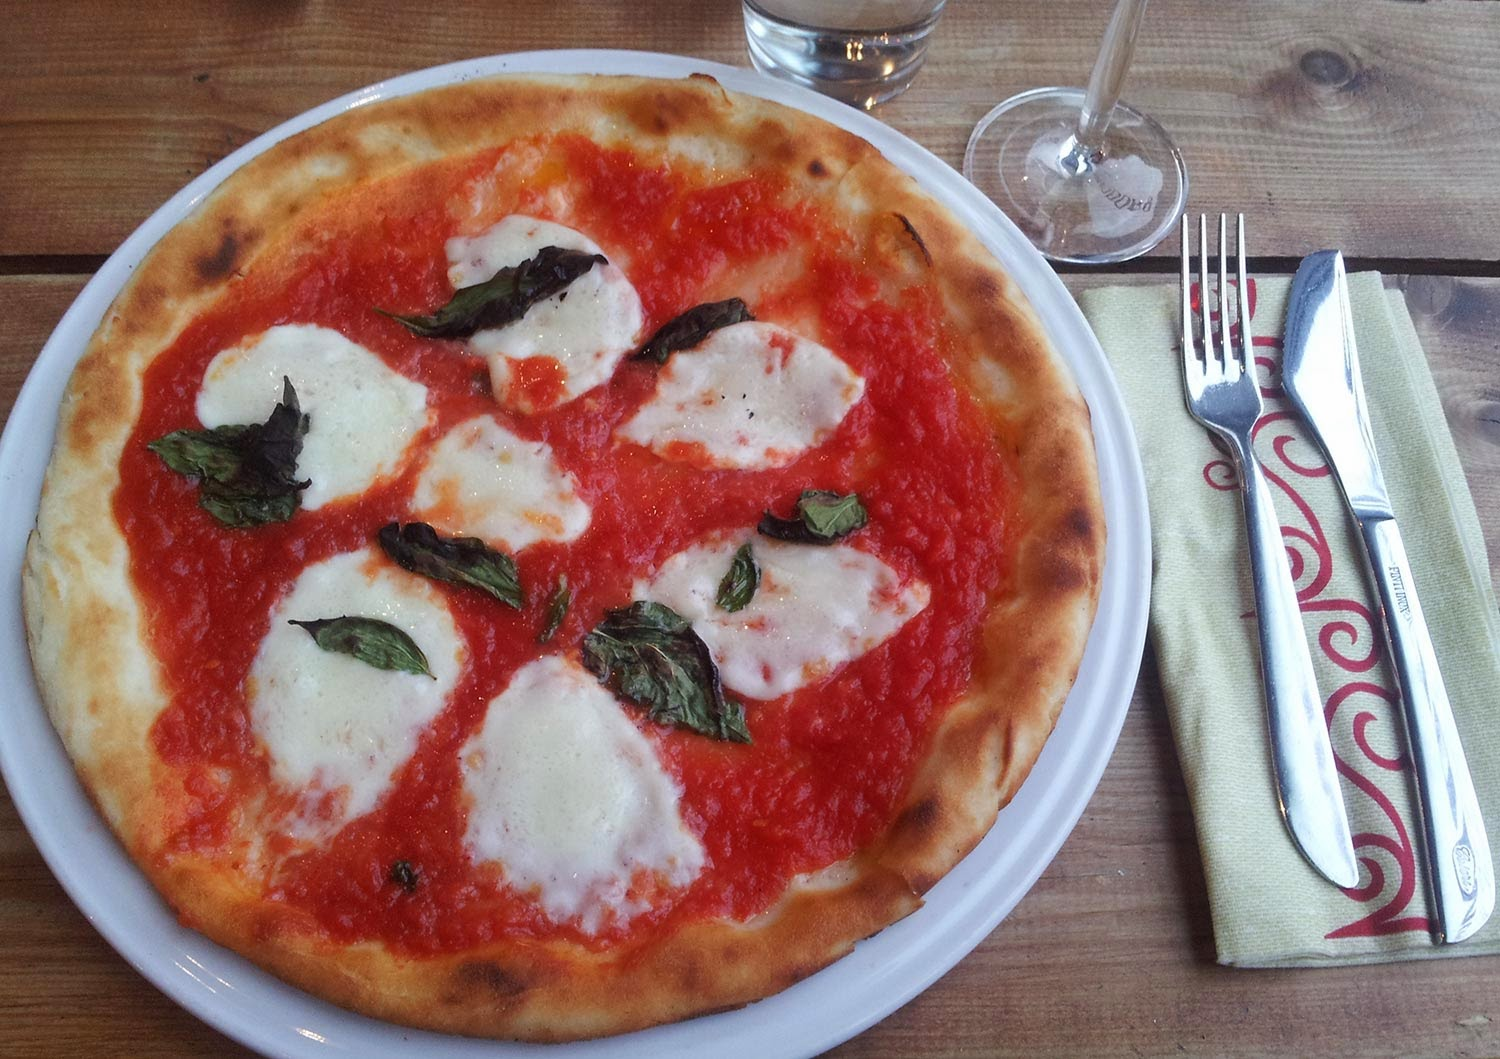 Gluten-free pizza at Rossopomodoro in Wandsworth, Greater London. Mozzarella, tomato, basil...sometimes, simple is best. Pooling saliva: not pictured.  Image © Anita Isalska